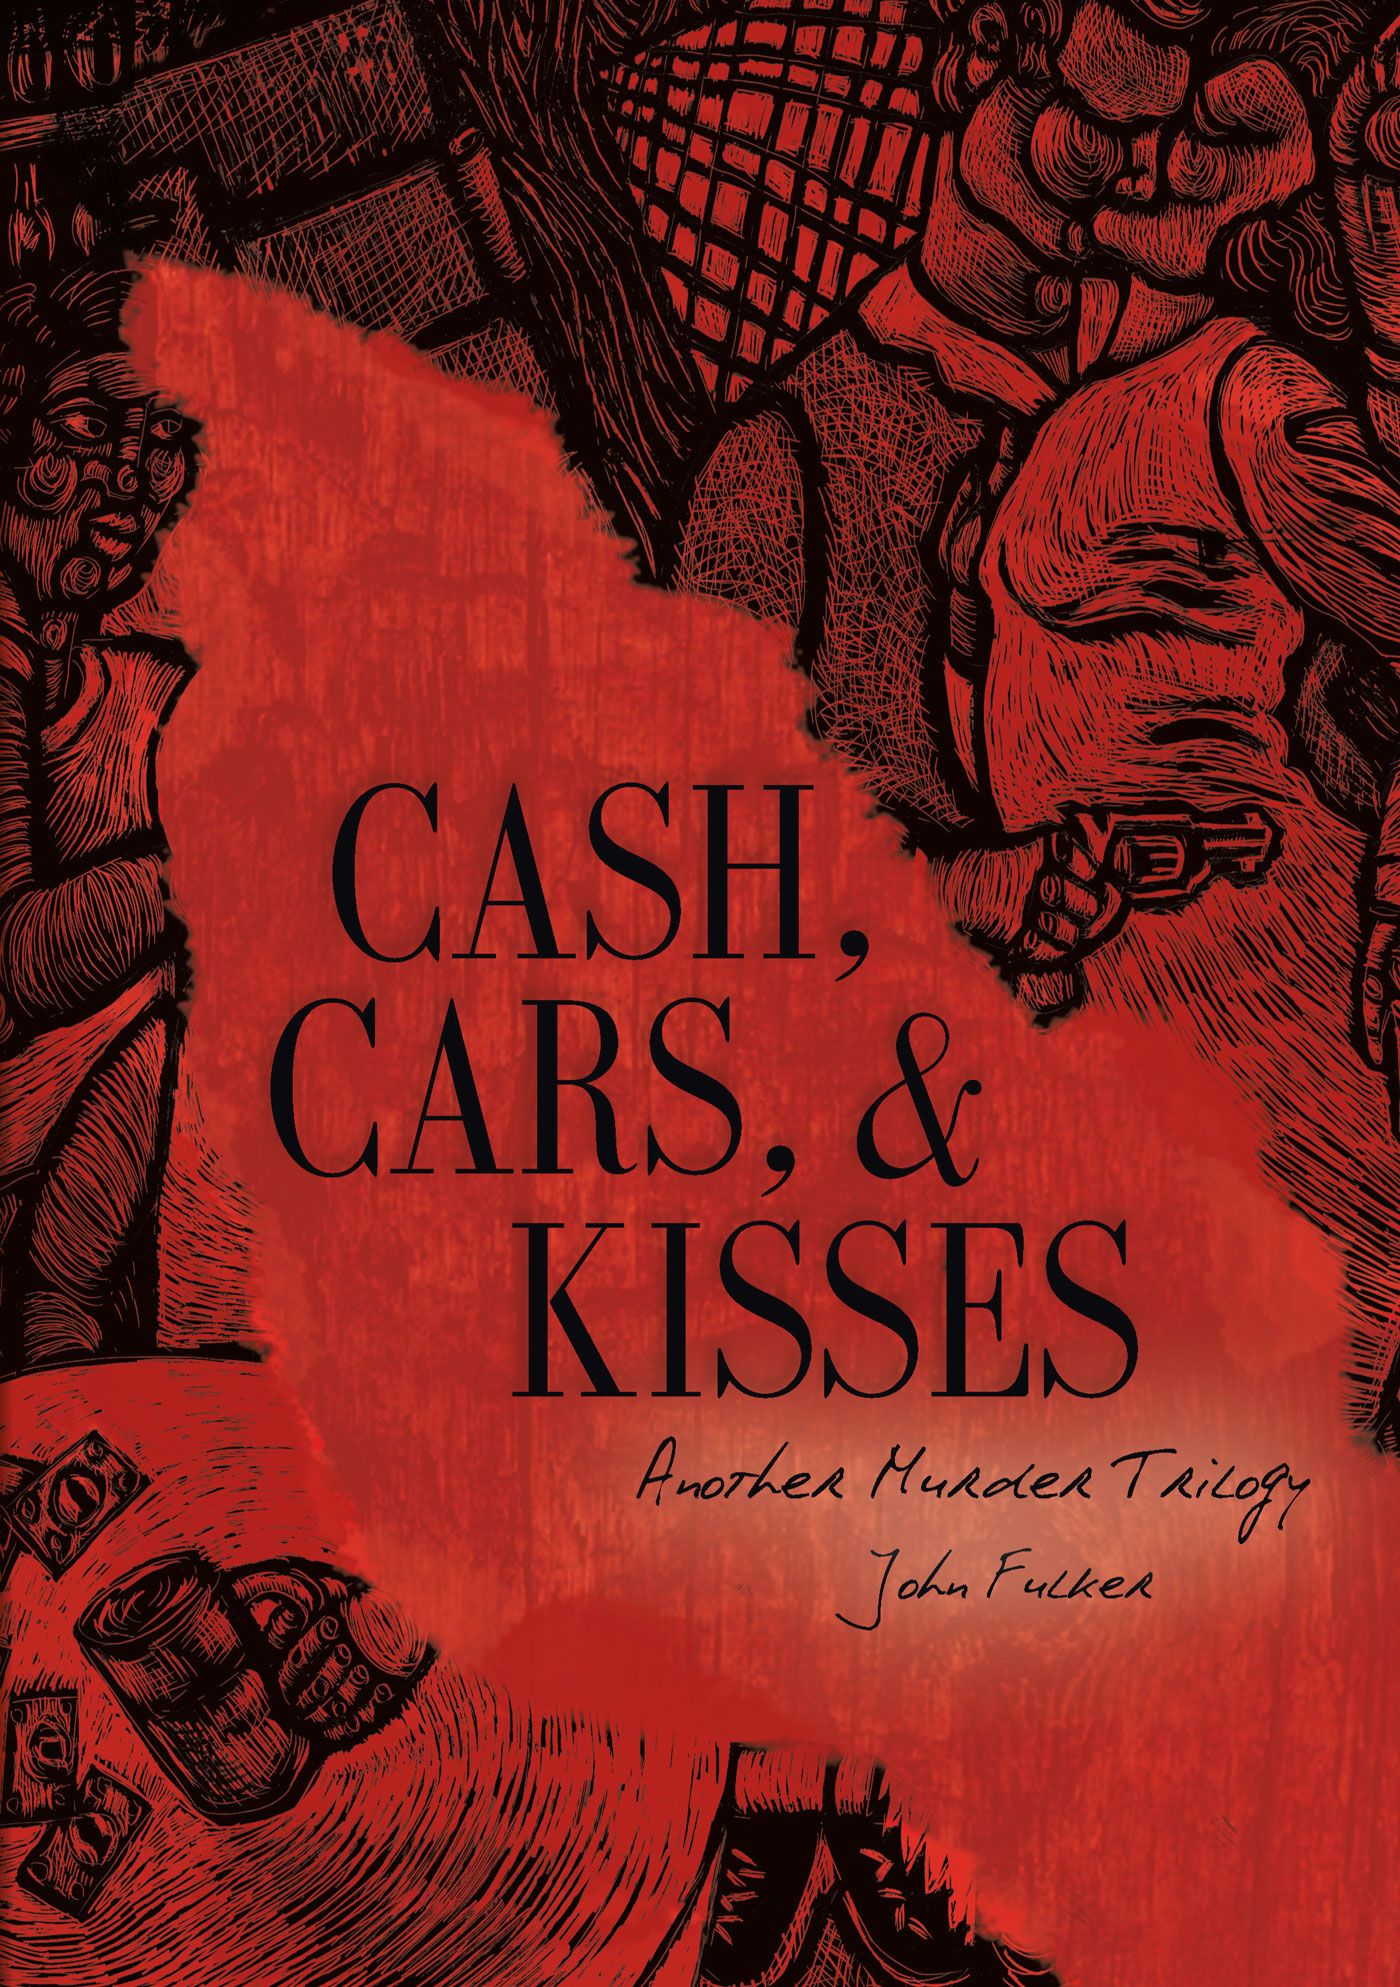 Cash, Cars, & Kisses